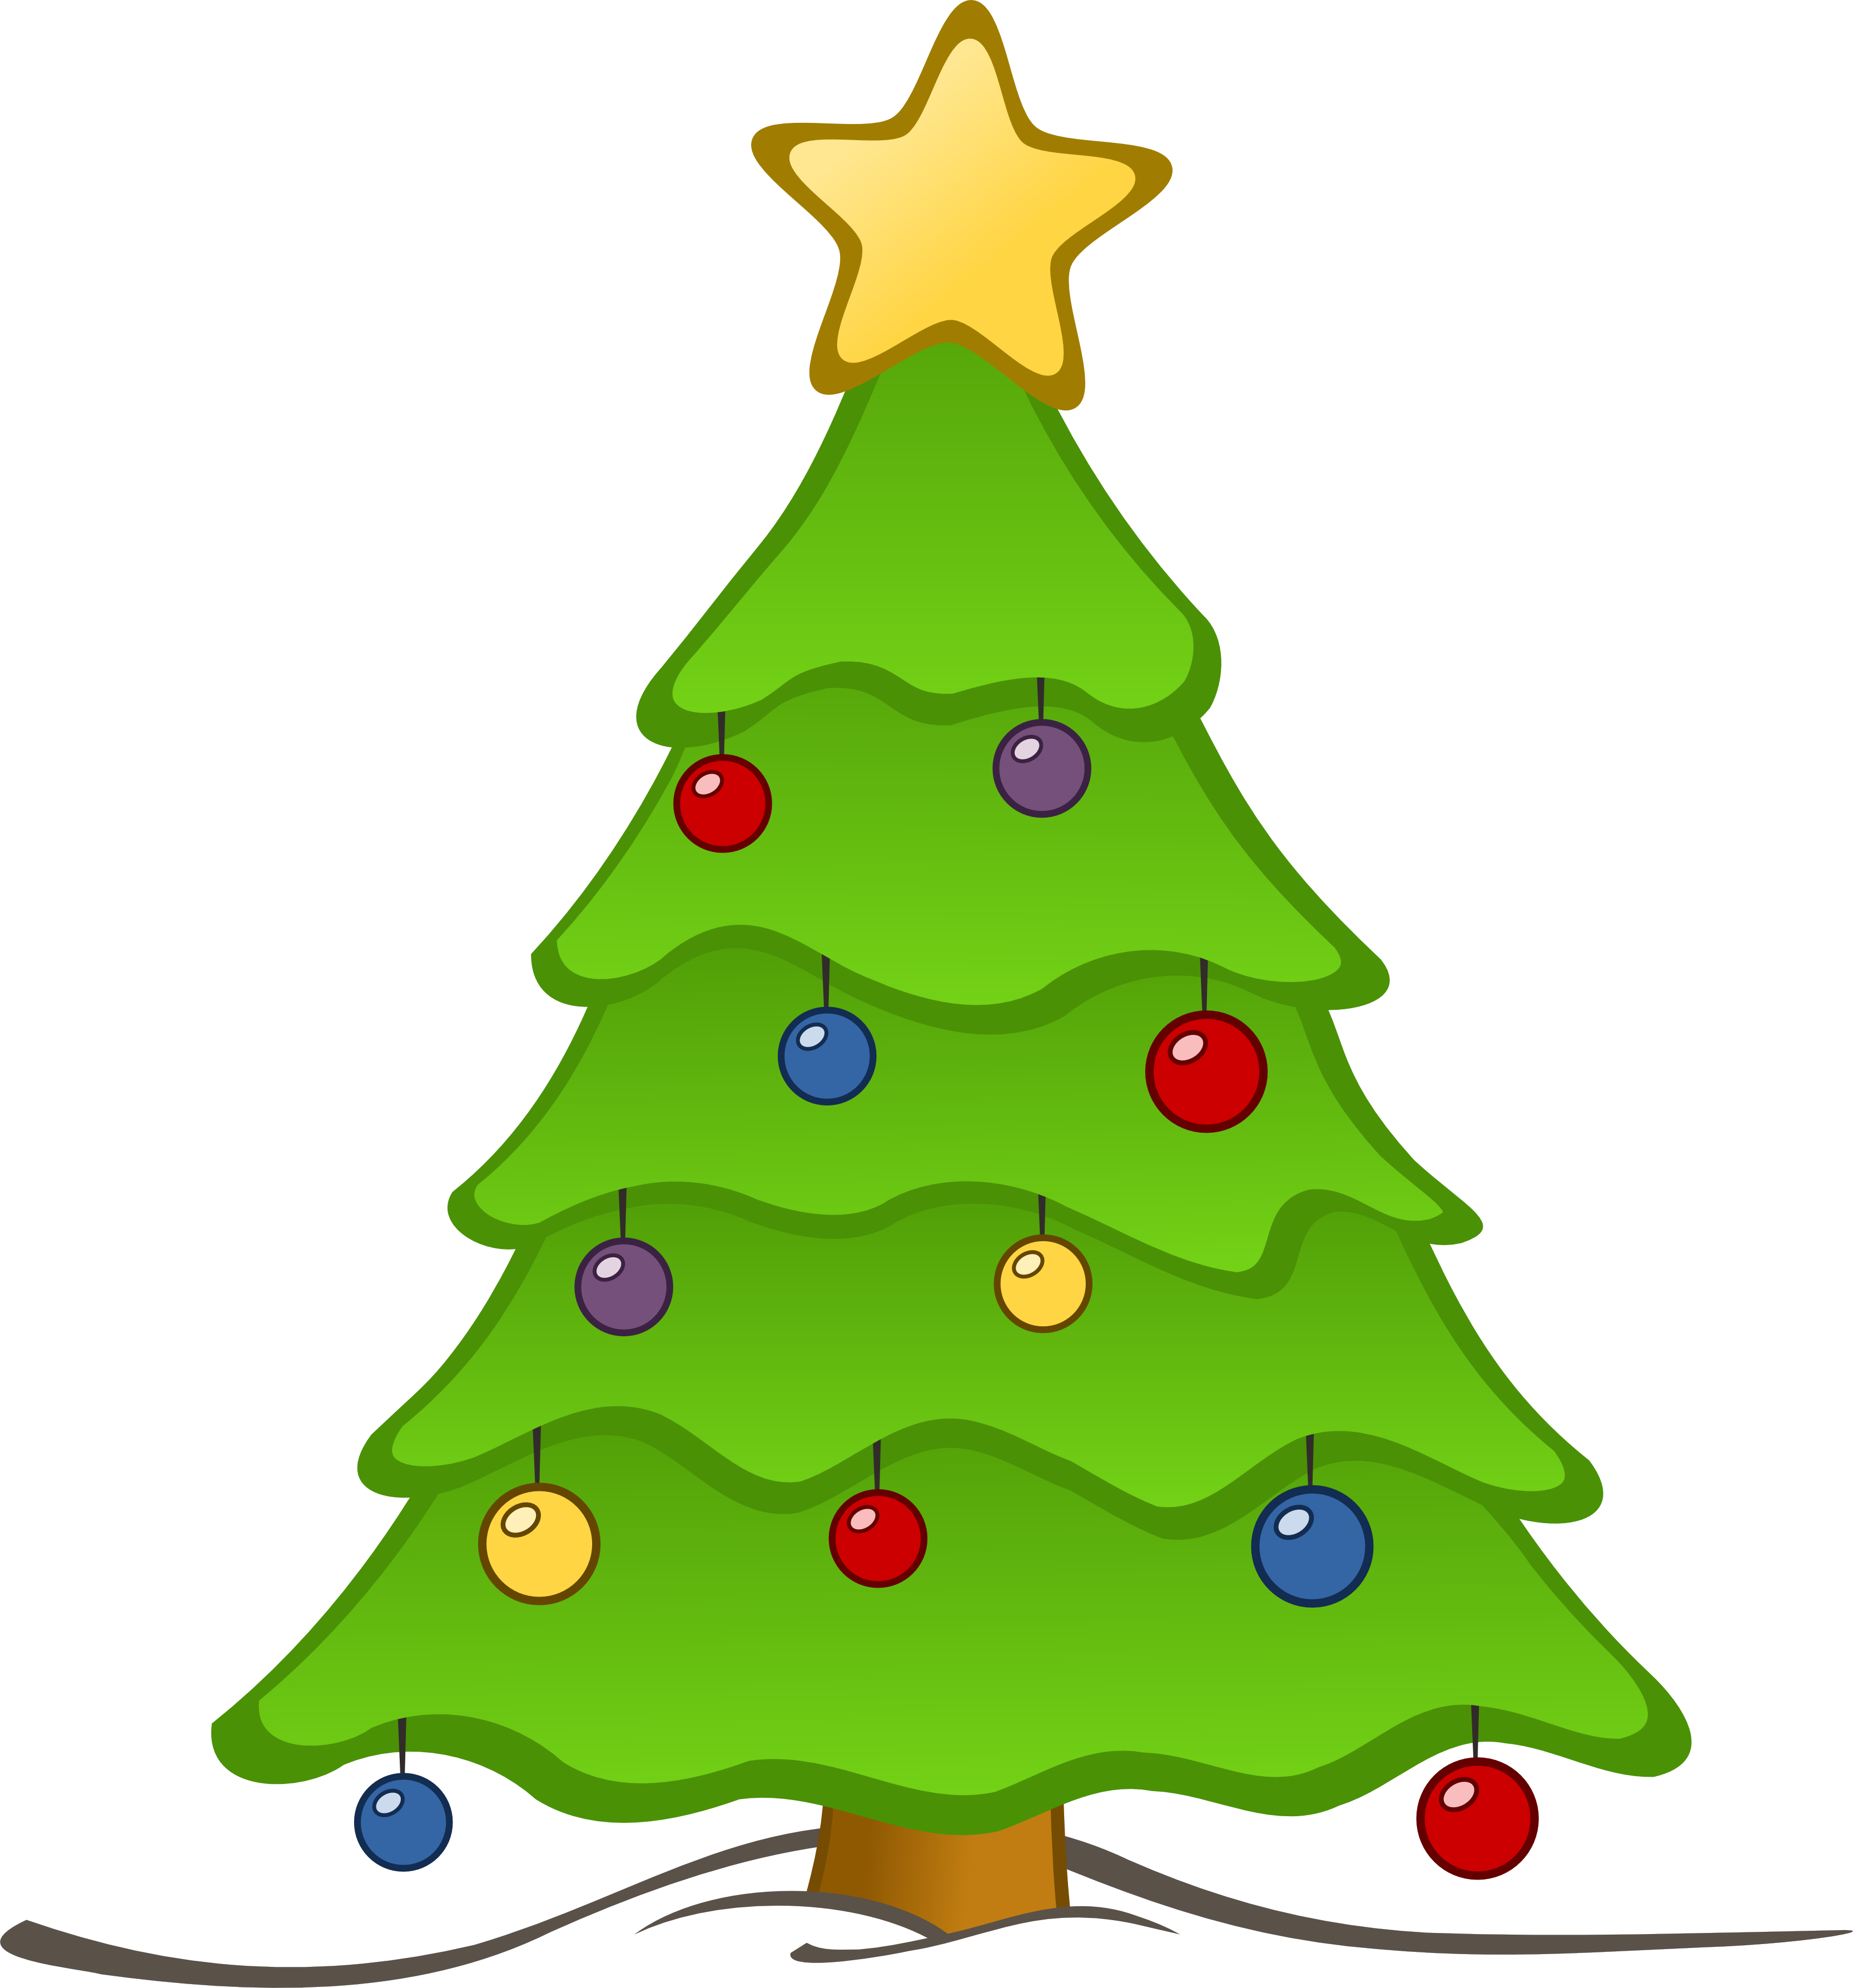 Christmas Tree clipart #7, Download drawings